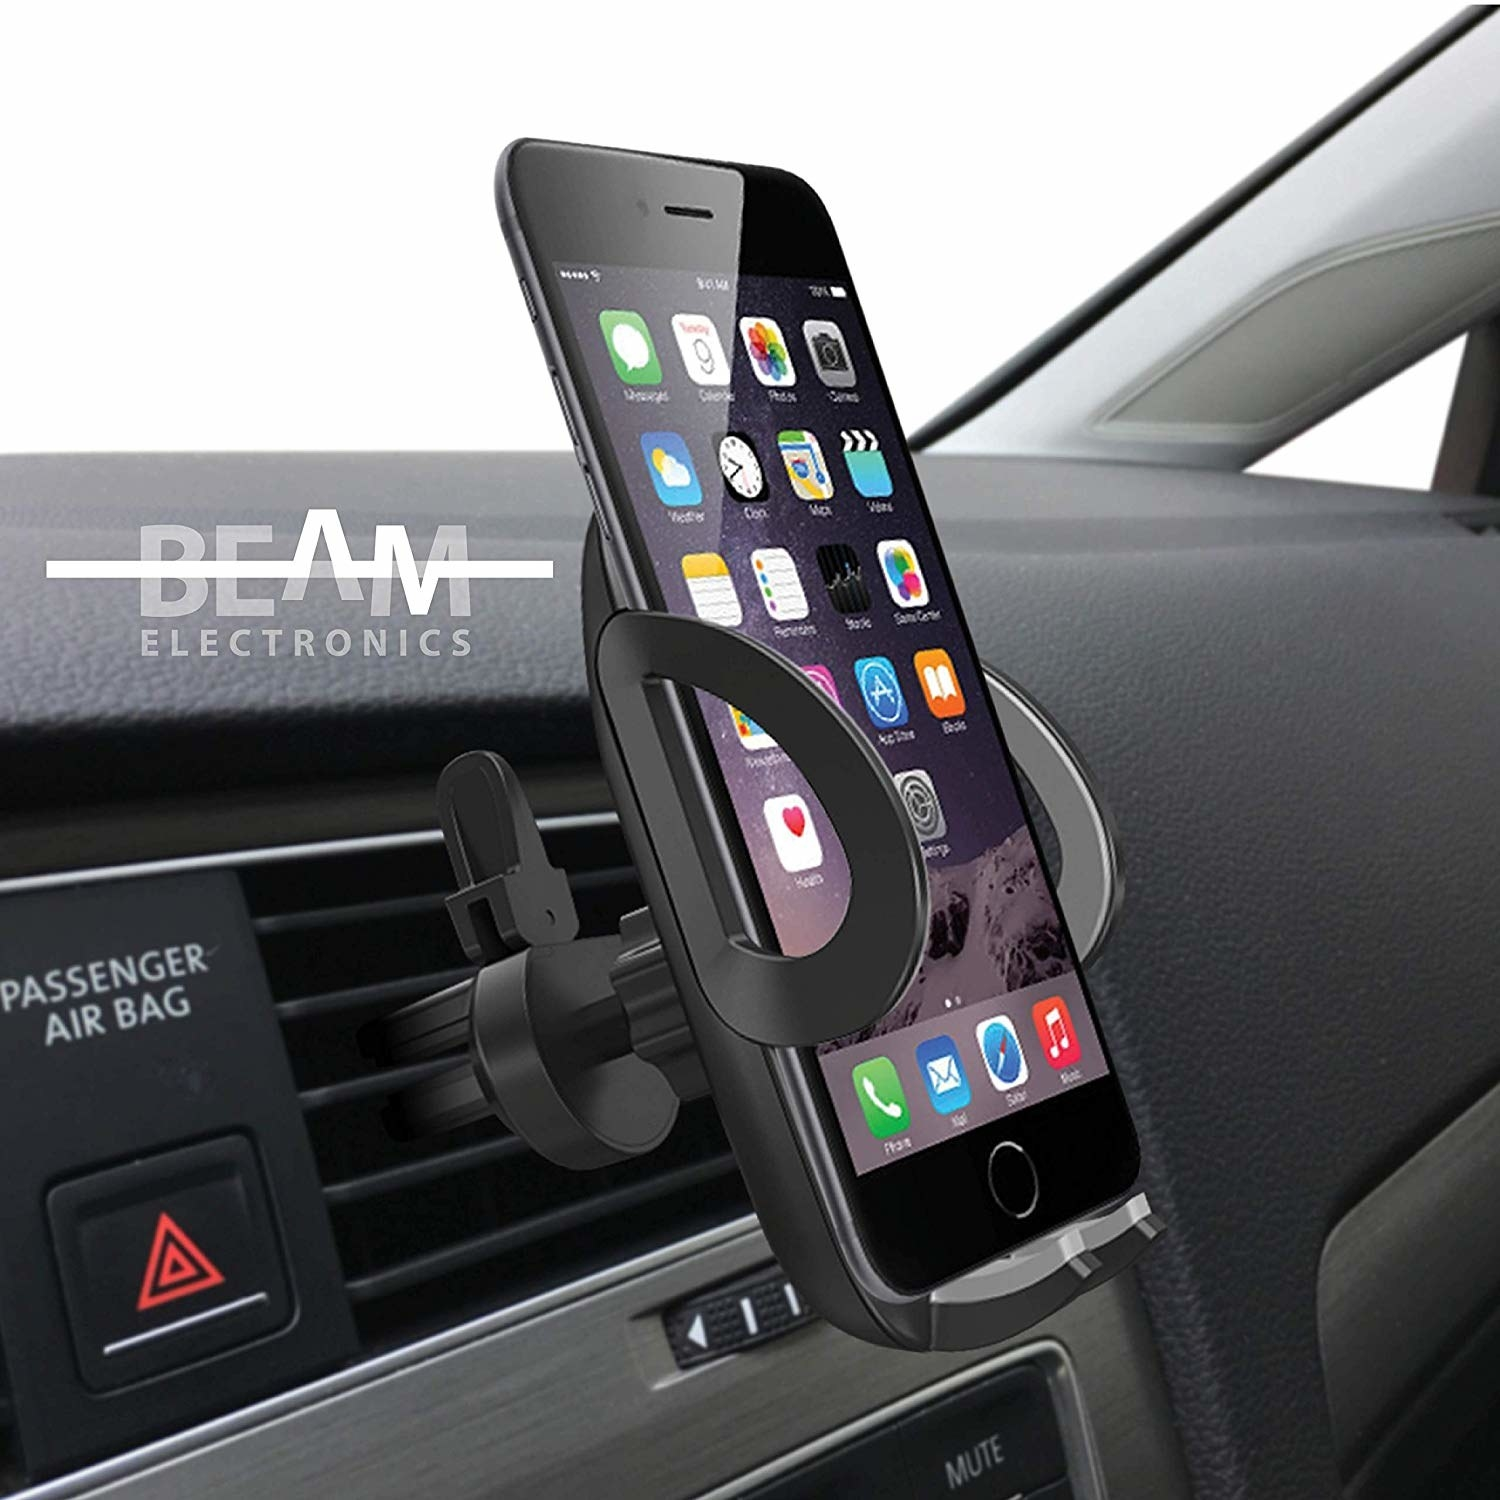 The smartphone mount holding an iPhone clipped into the air vent in a car